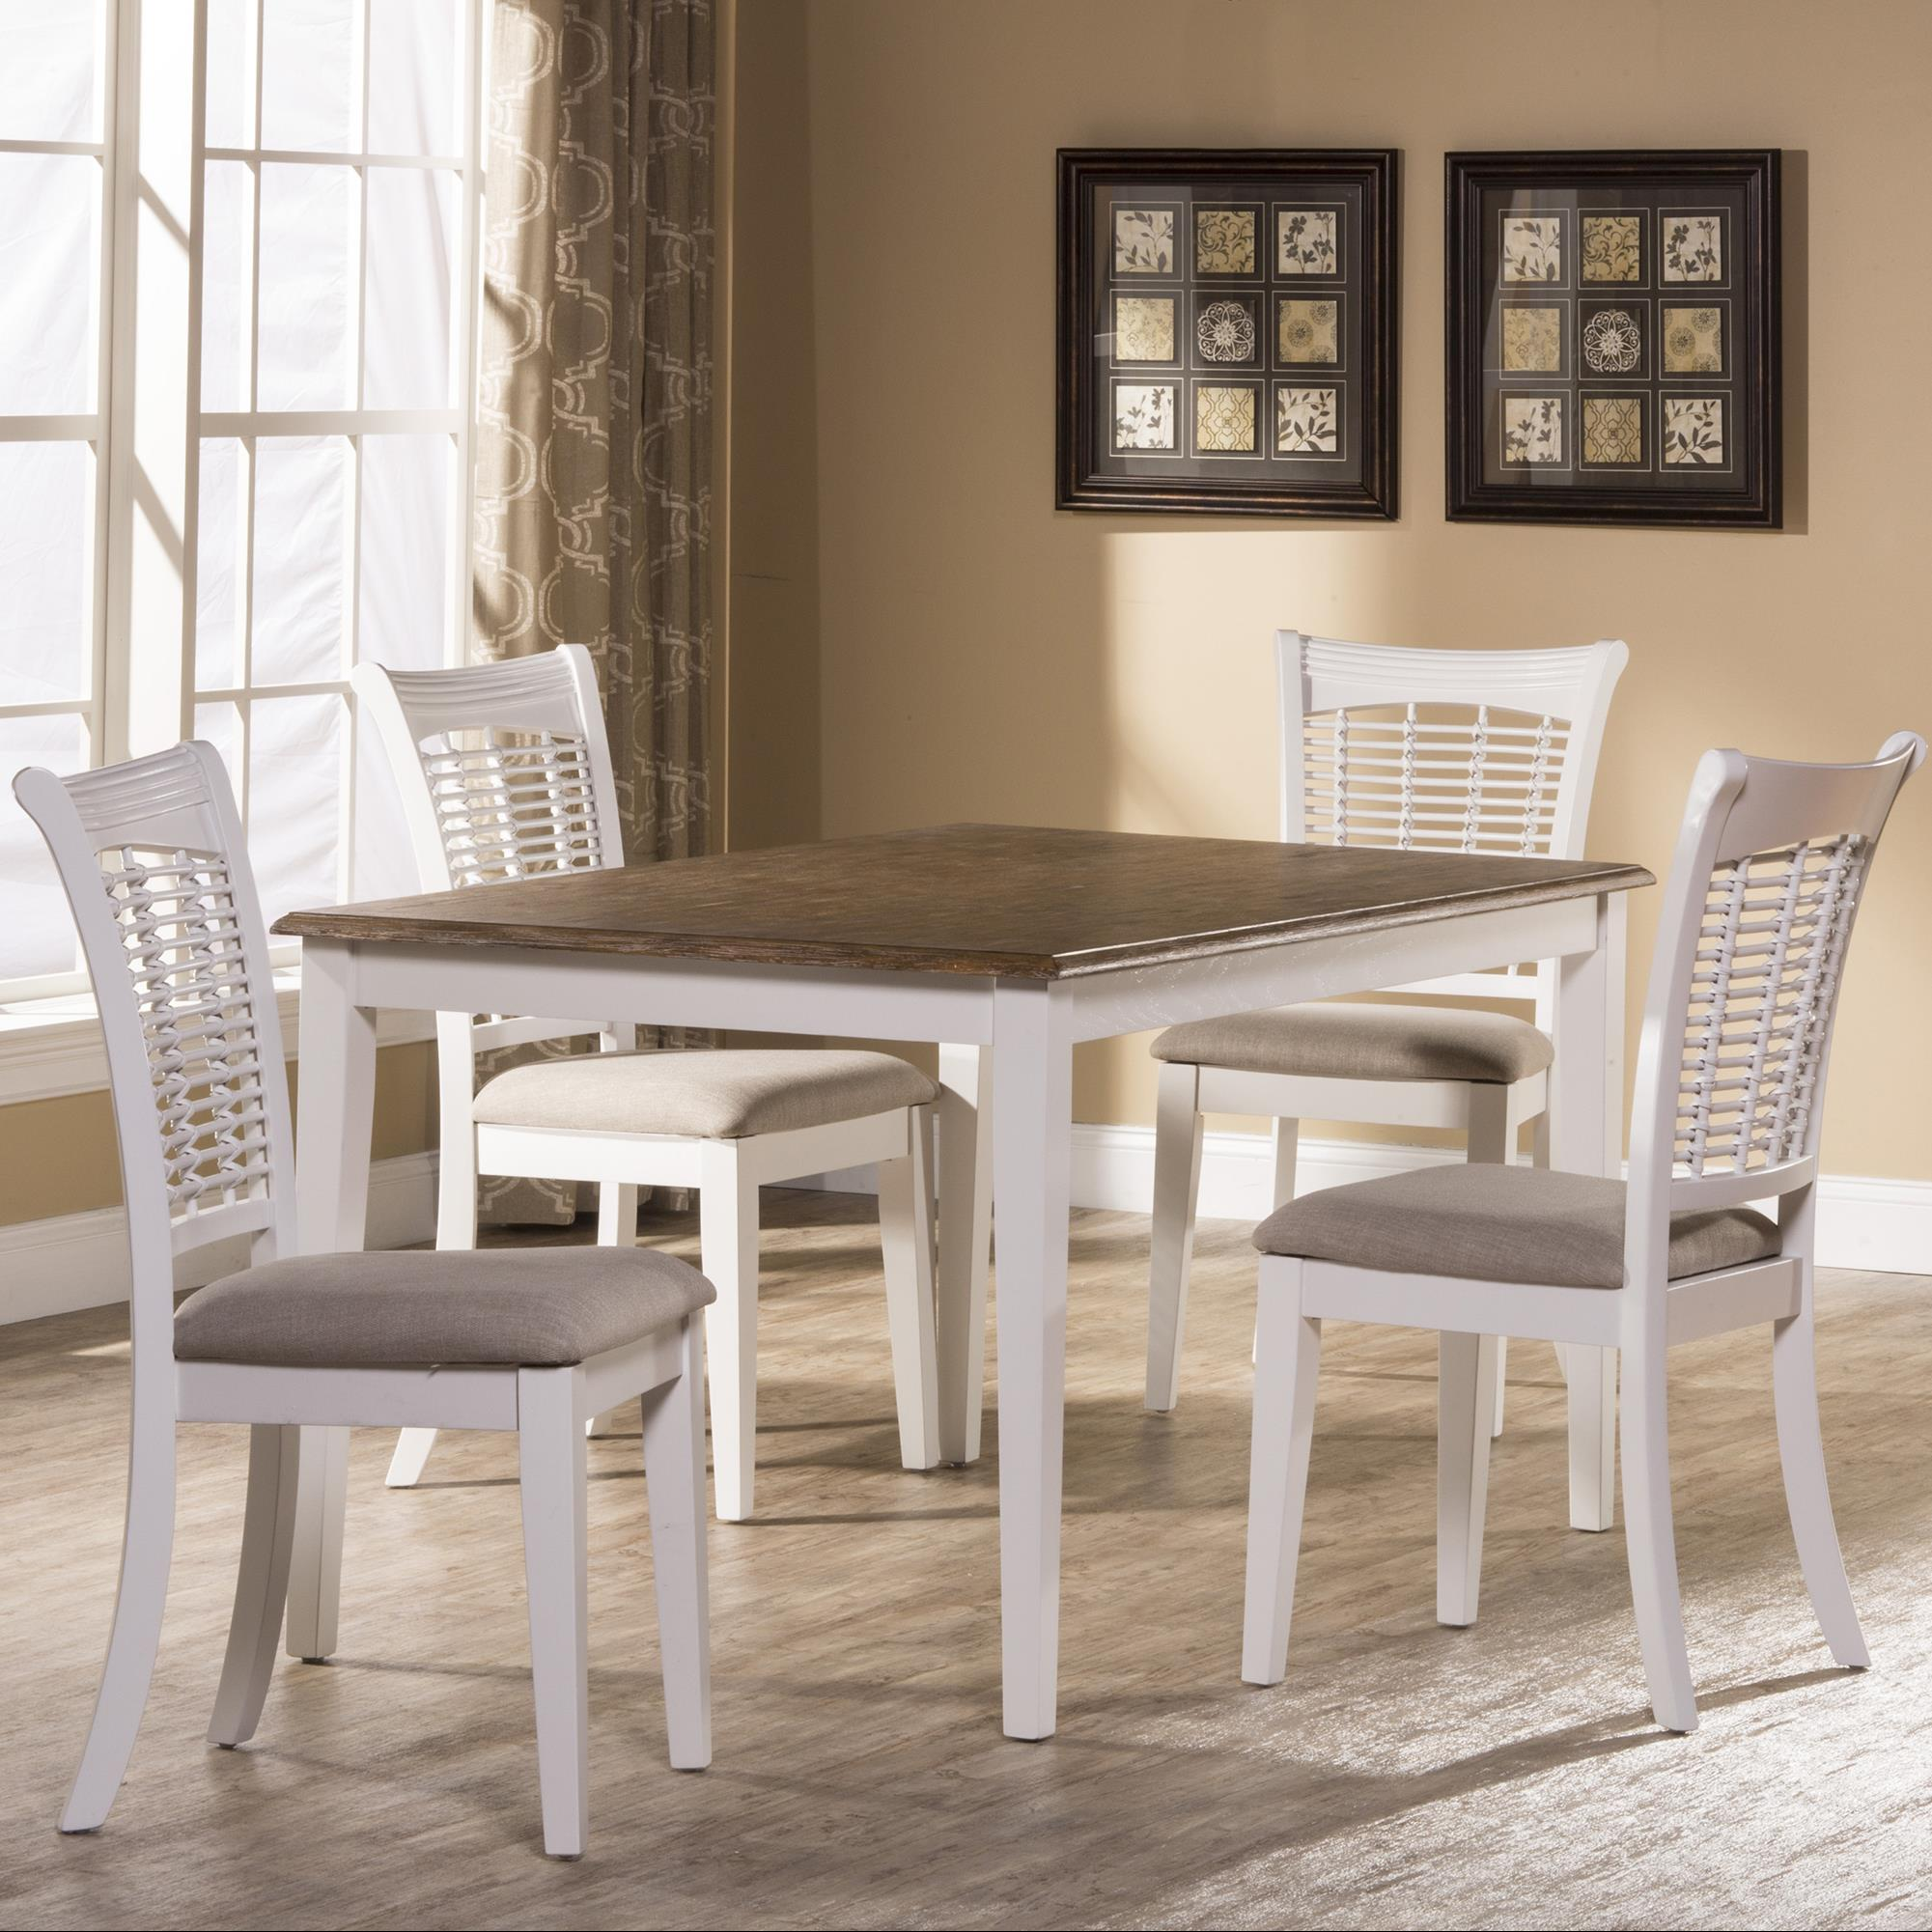 Hillsdale Bayberry White Five Piece Rectangle Dining Set - Item Number: 5791DTBRC